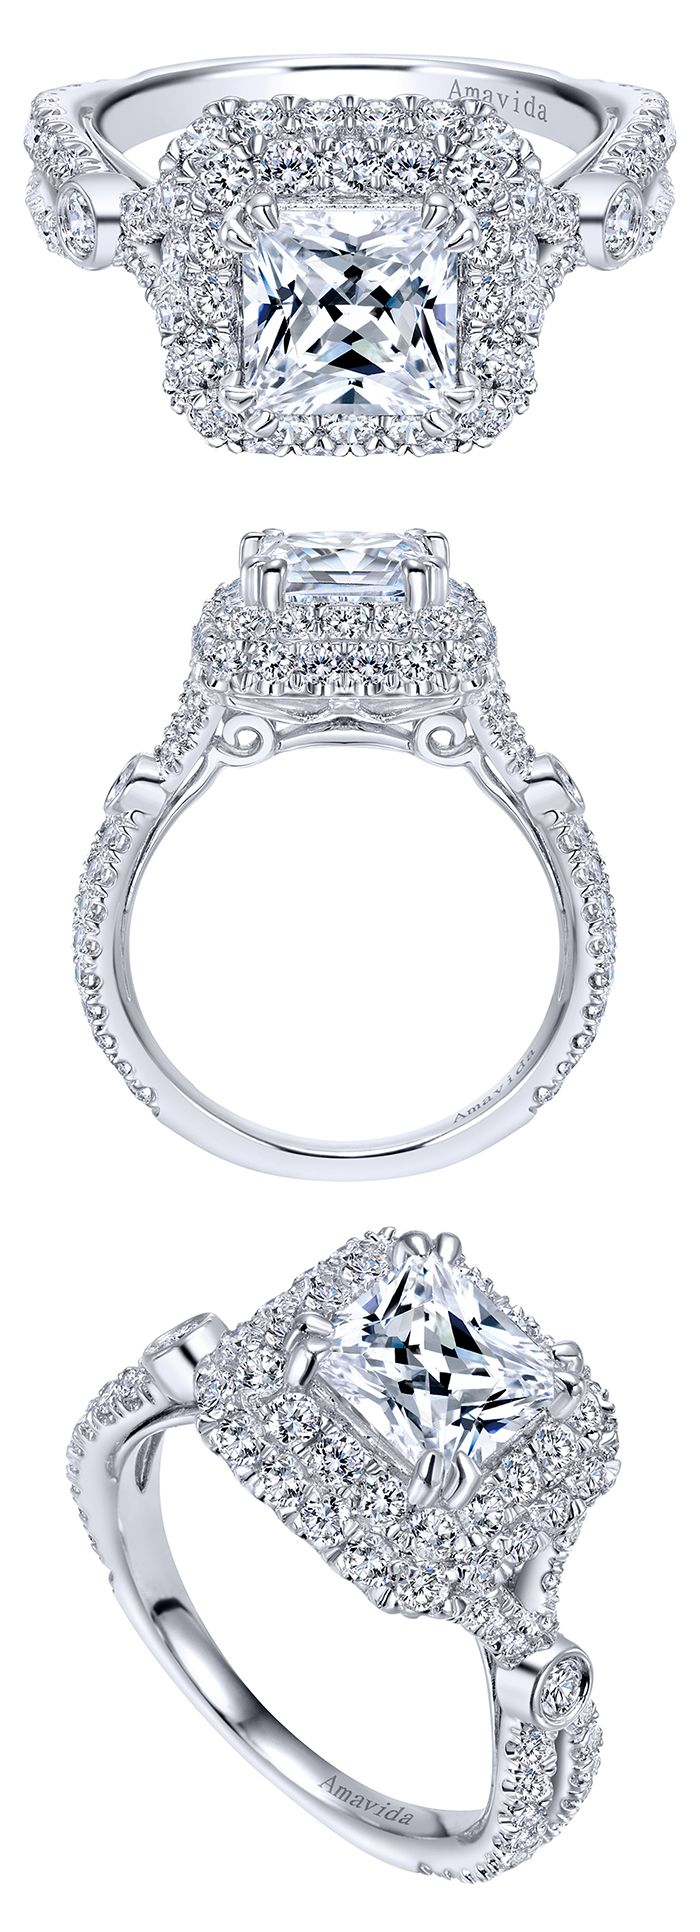 A million times yes! An absolutely gorgeous Amavida Bridal 18k White Gold Contemporary Halo Engagement Ring by Gabriel & Co. that has perfect diamonds all over it. This engagement ring has a beautiful double halo with gorgeous details on the sides making it so unique and special!